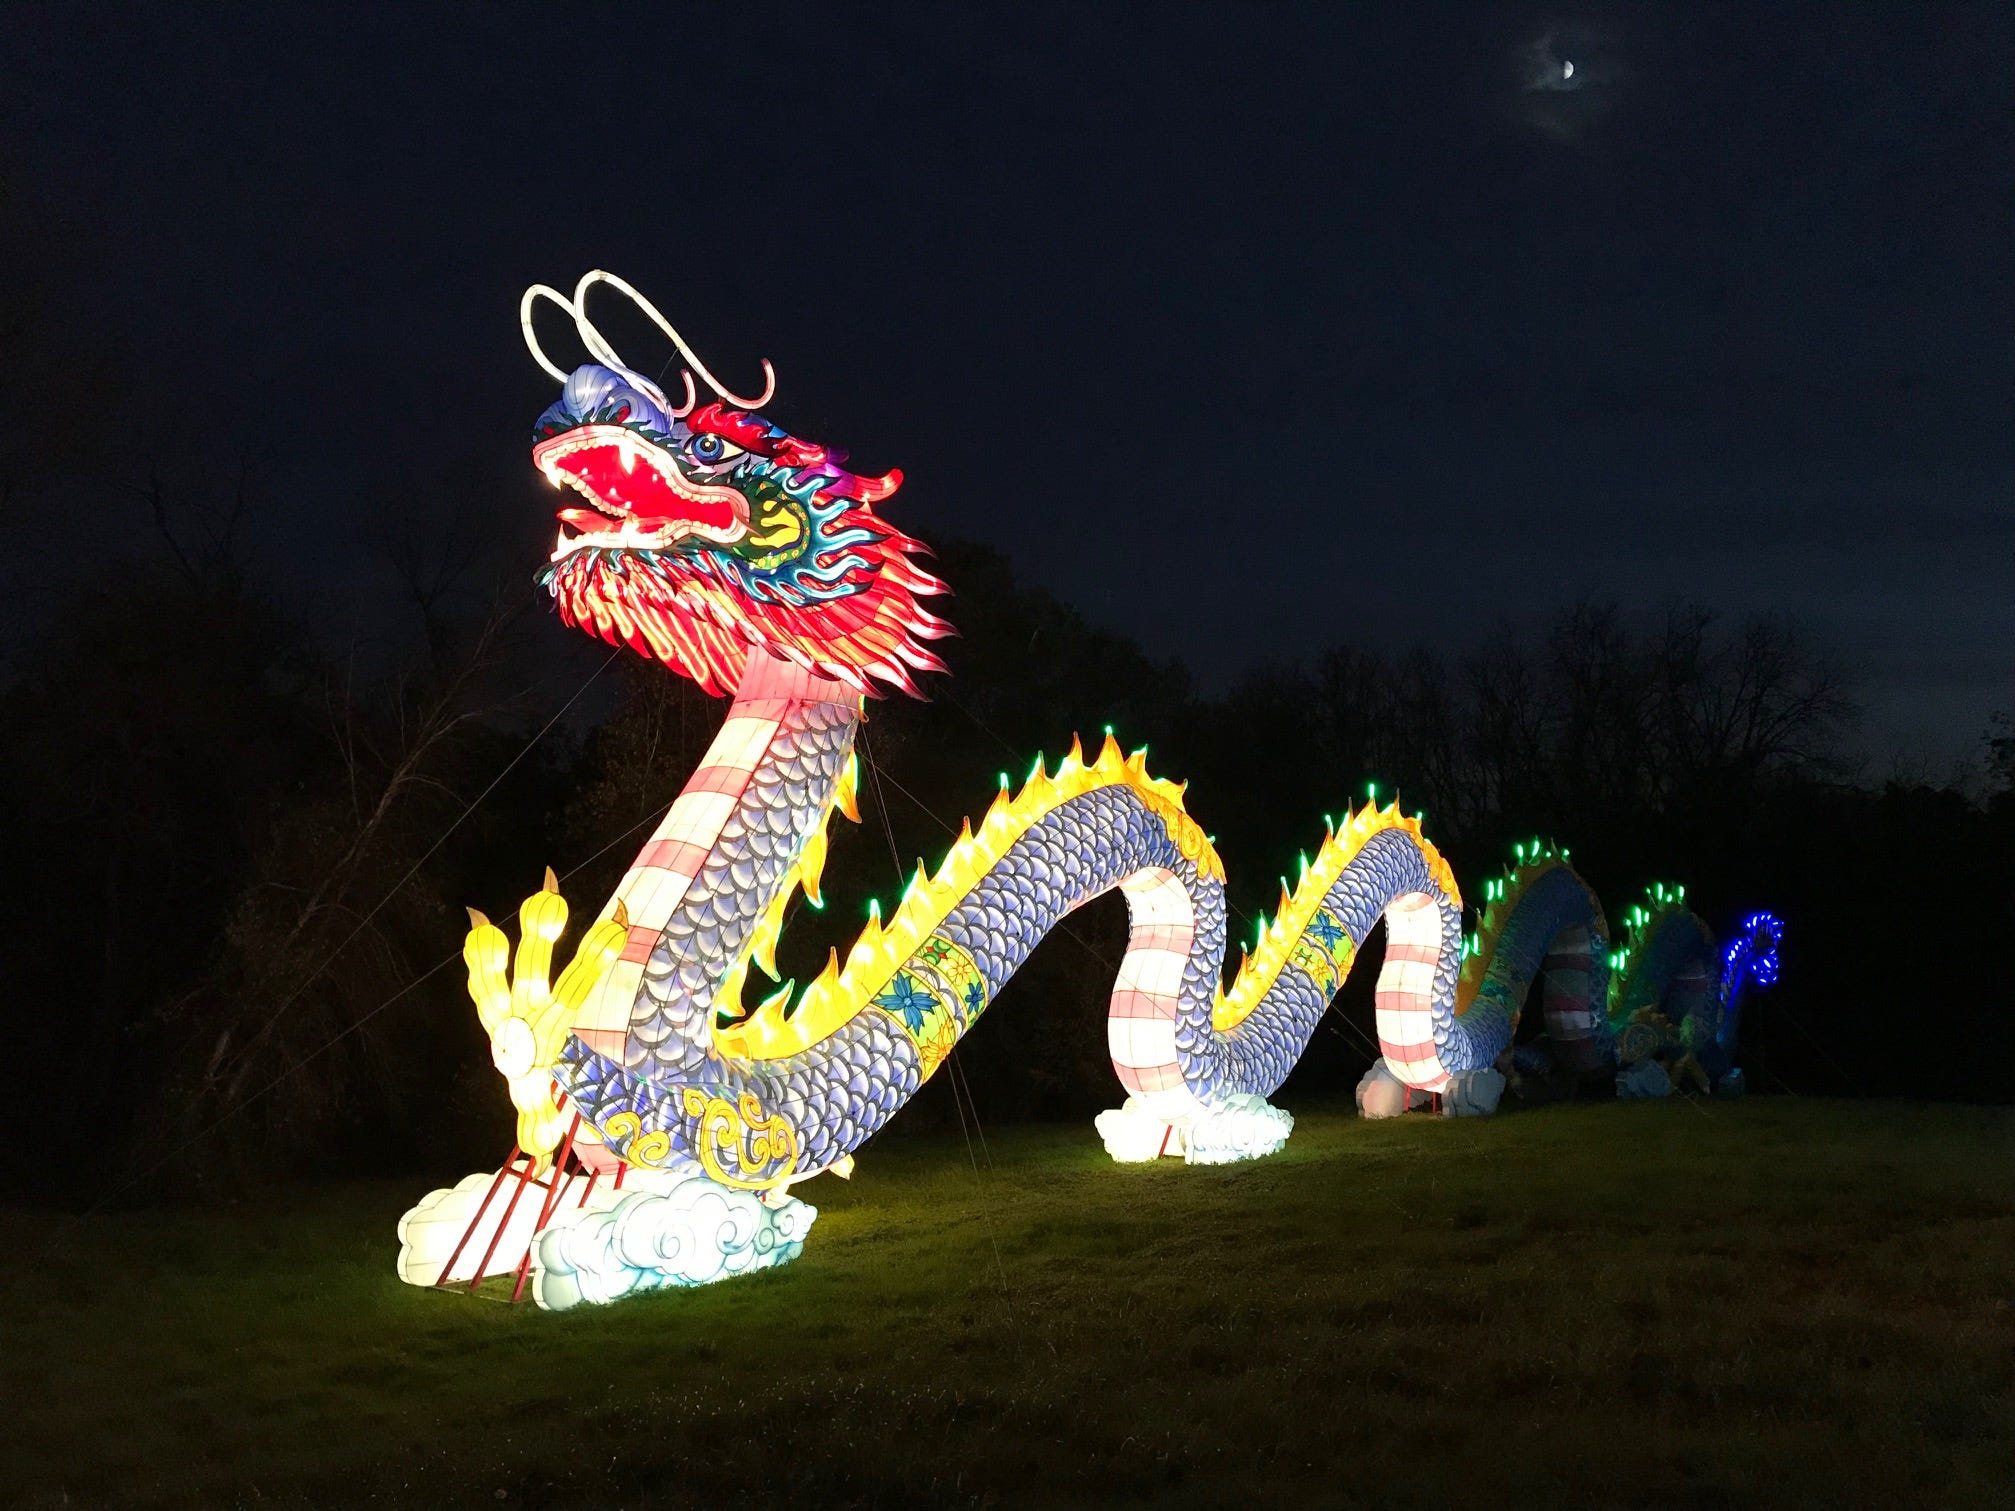 Under the moon, the dragon spans 200 feet at the China Lights lantern festival. The dragon, which was orange and red in 2017, changed its colors for the 2018 event. The dragon, along with its companion phoenix, are the only two displays from 2017 that returned this year.